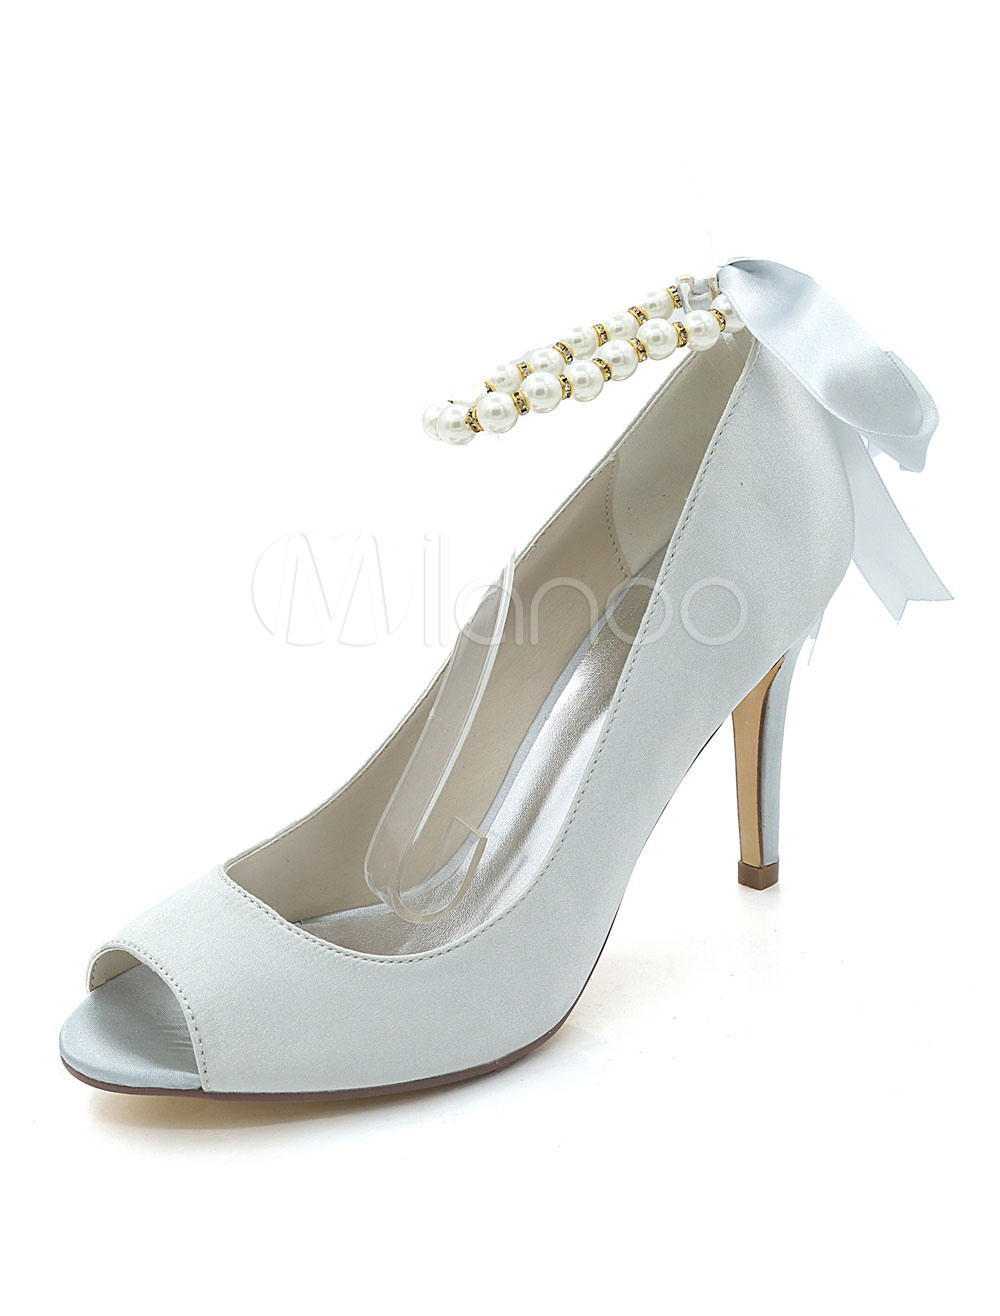 Silver Wedding Shoes Satin Peep Toe Pearls Ankle Strap Pumps Women High Heels